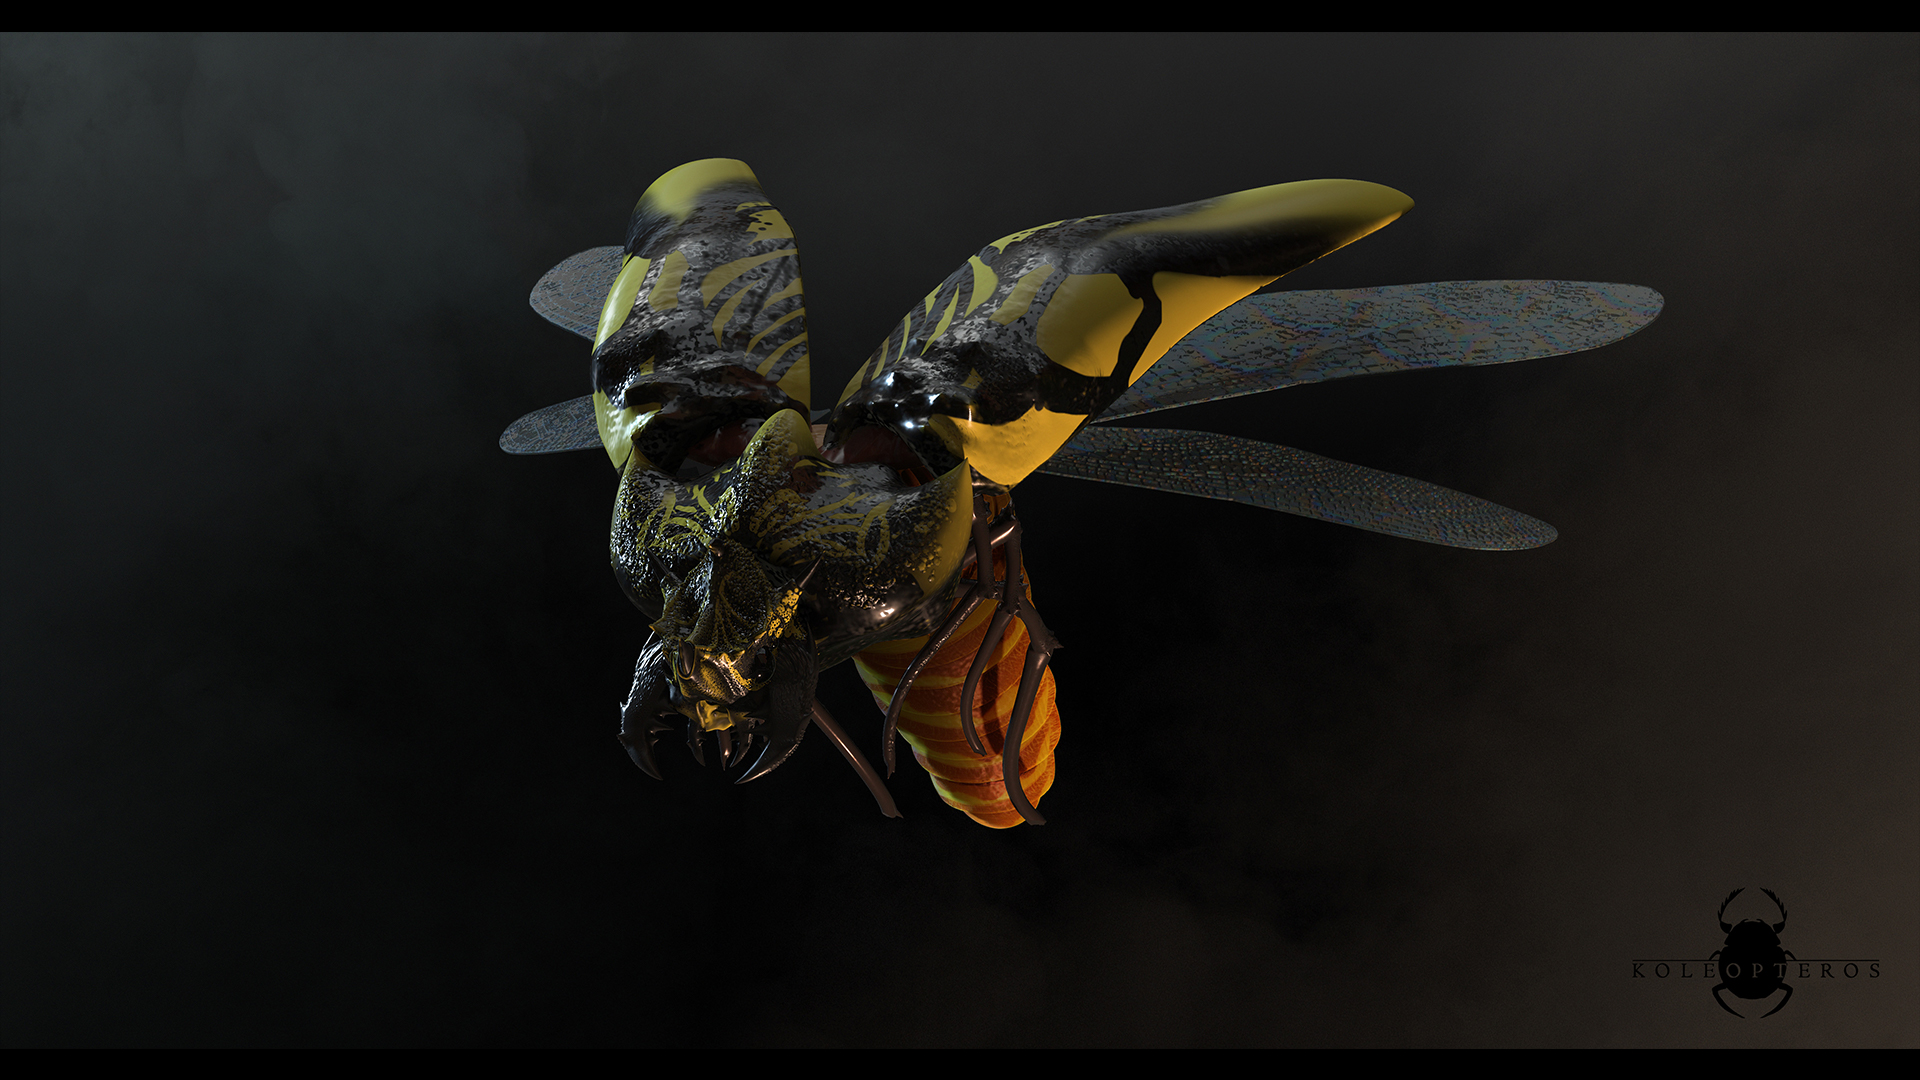 KT_insect_Soldier_Jamescombridge1920x1080.jpg